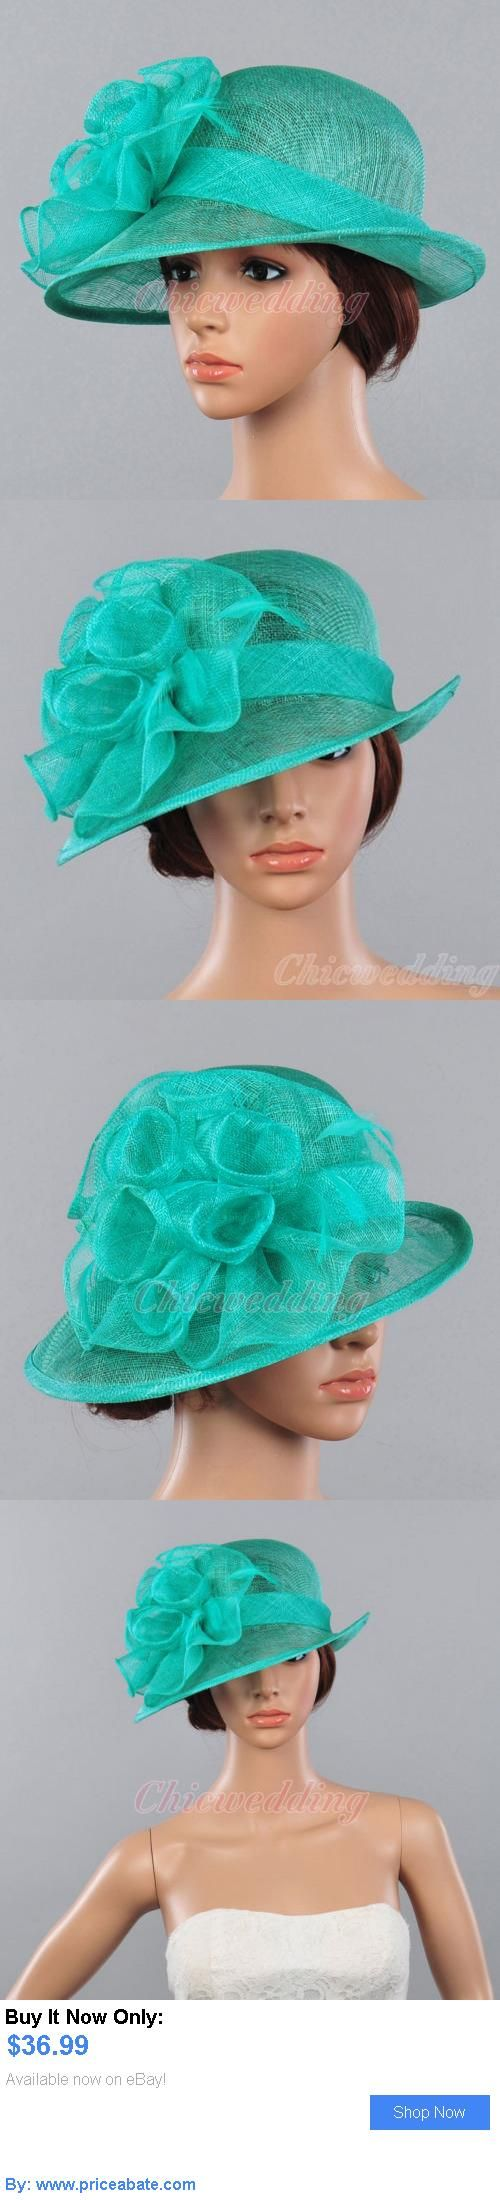 54 best Hats Galore! images on Pinterest | Headpieces, Sinamay hats ...